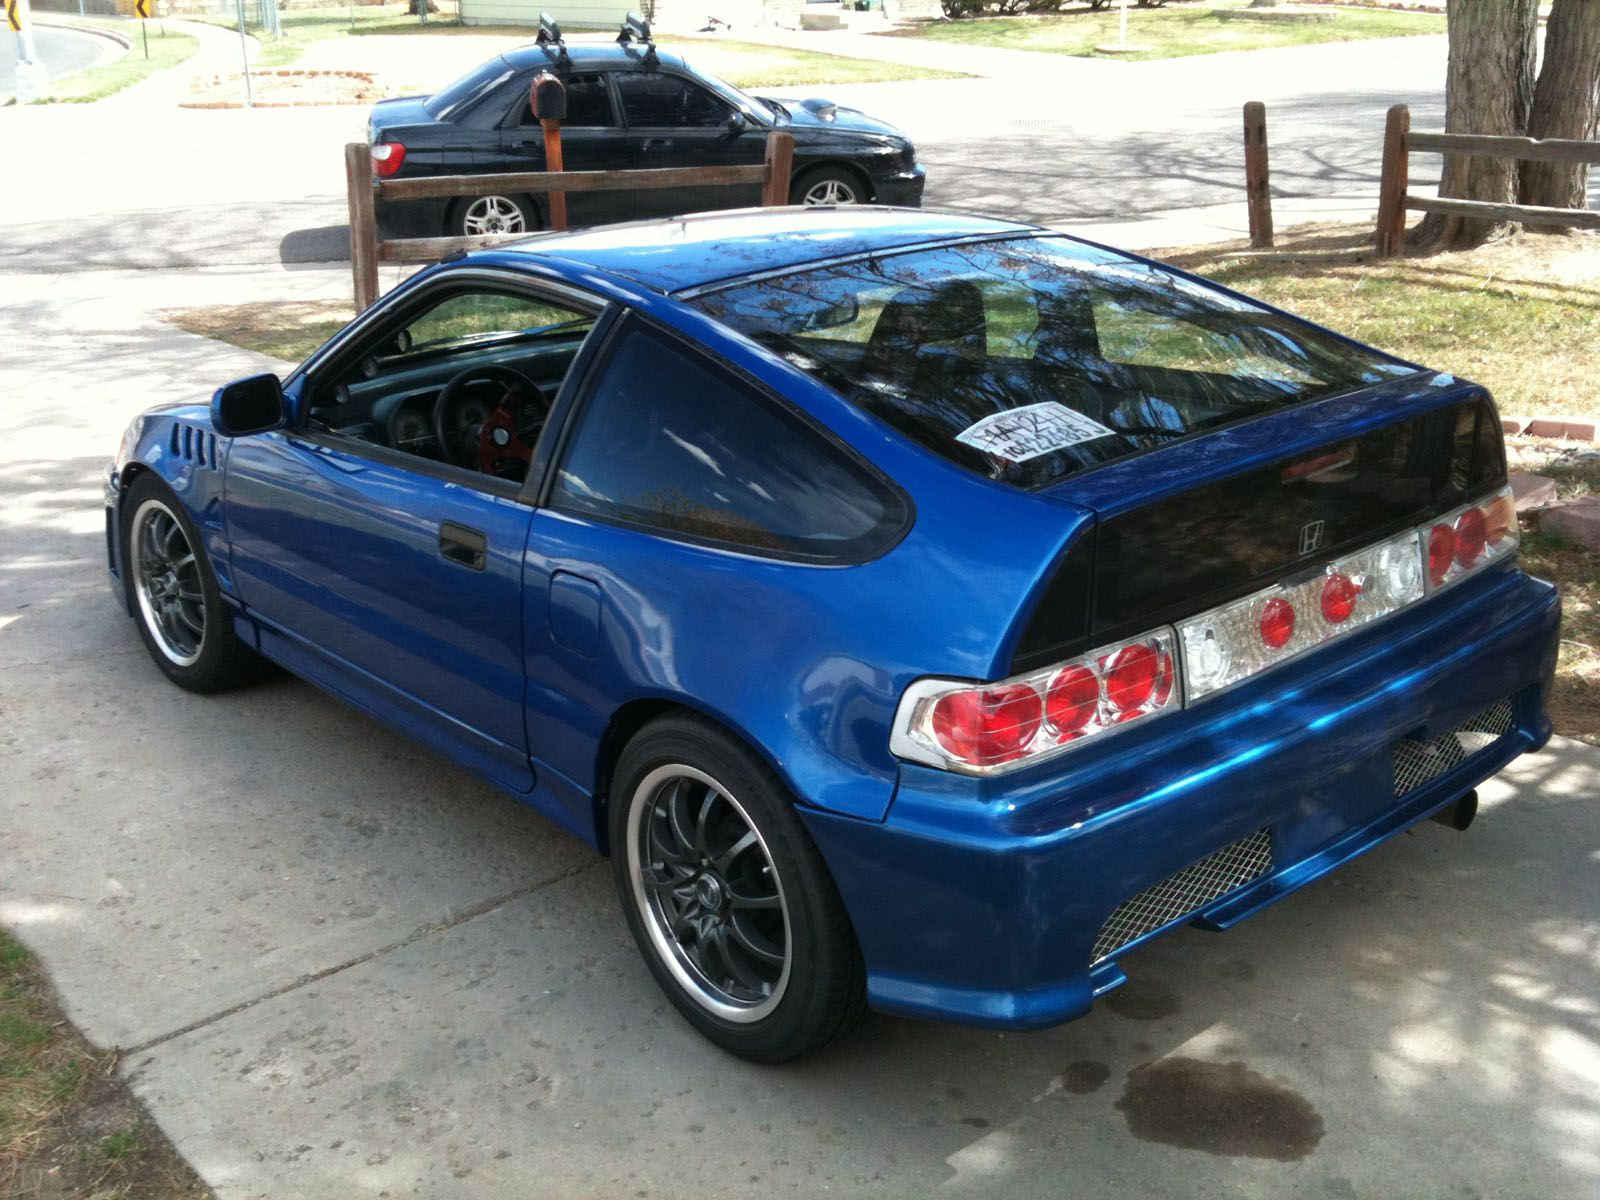 small resolution of 89 honda crx hatchback that is one of the sickest cars i have ever seen i cried a little